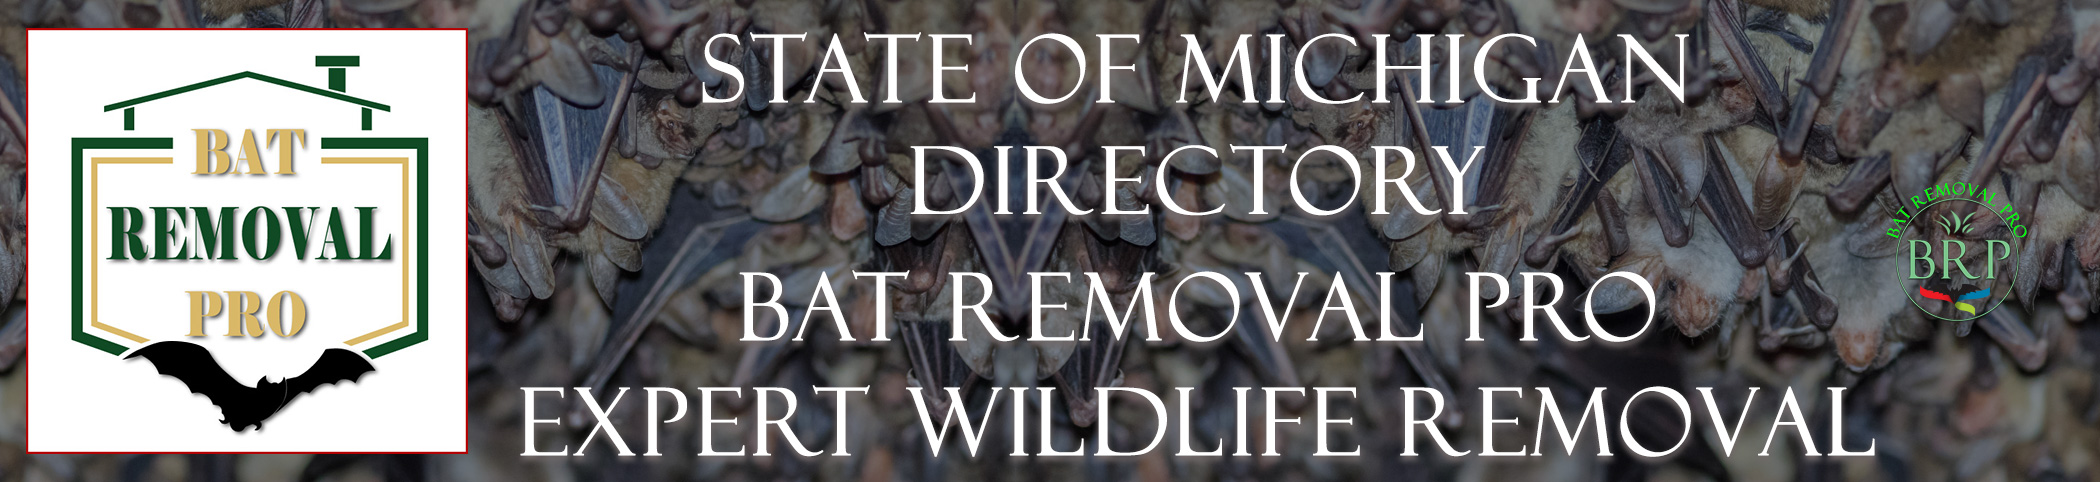 MICHIGAN-bat-removal-at-bat-removal-pro-header-image